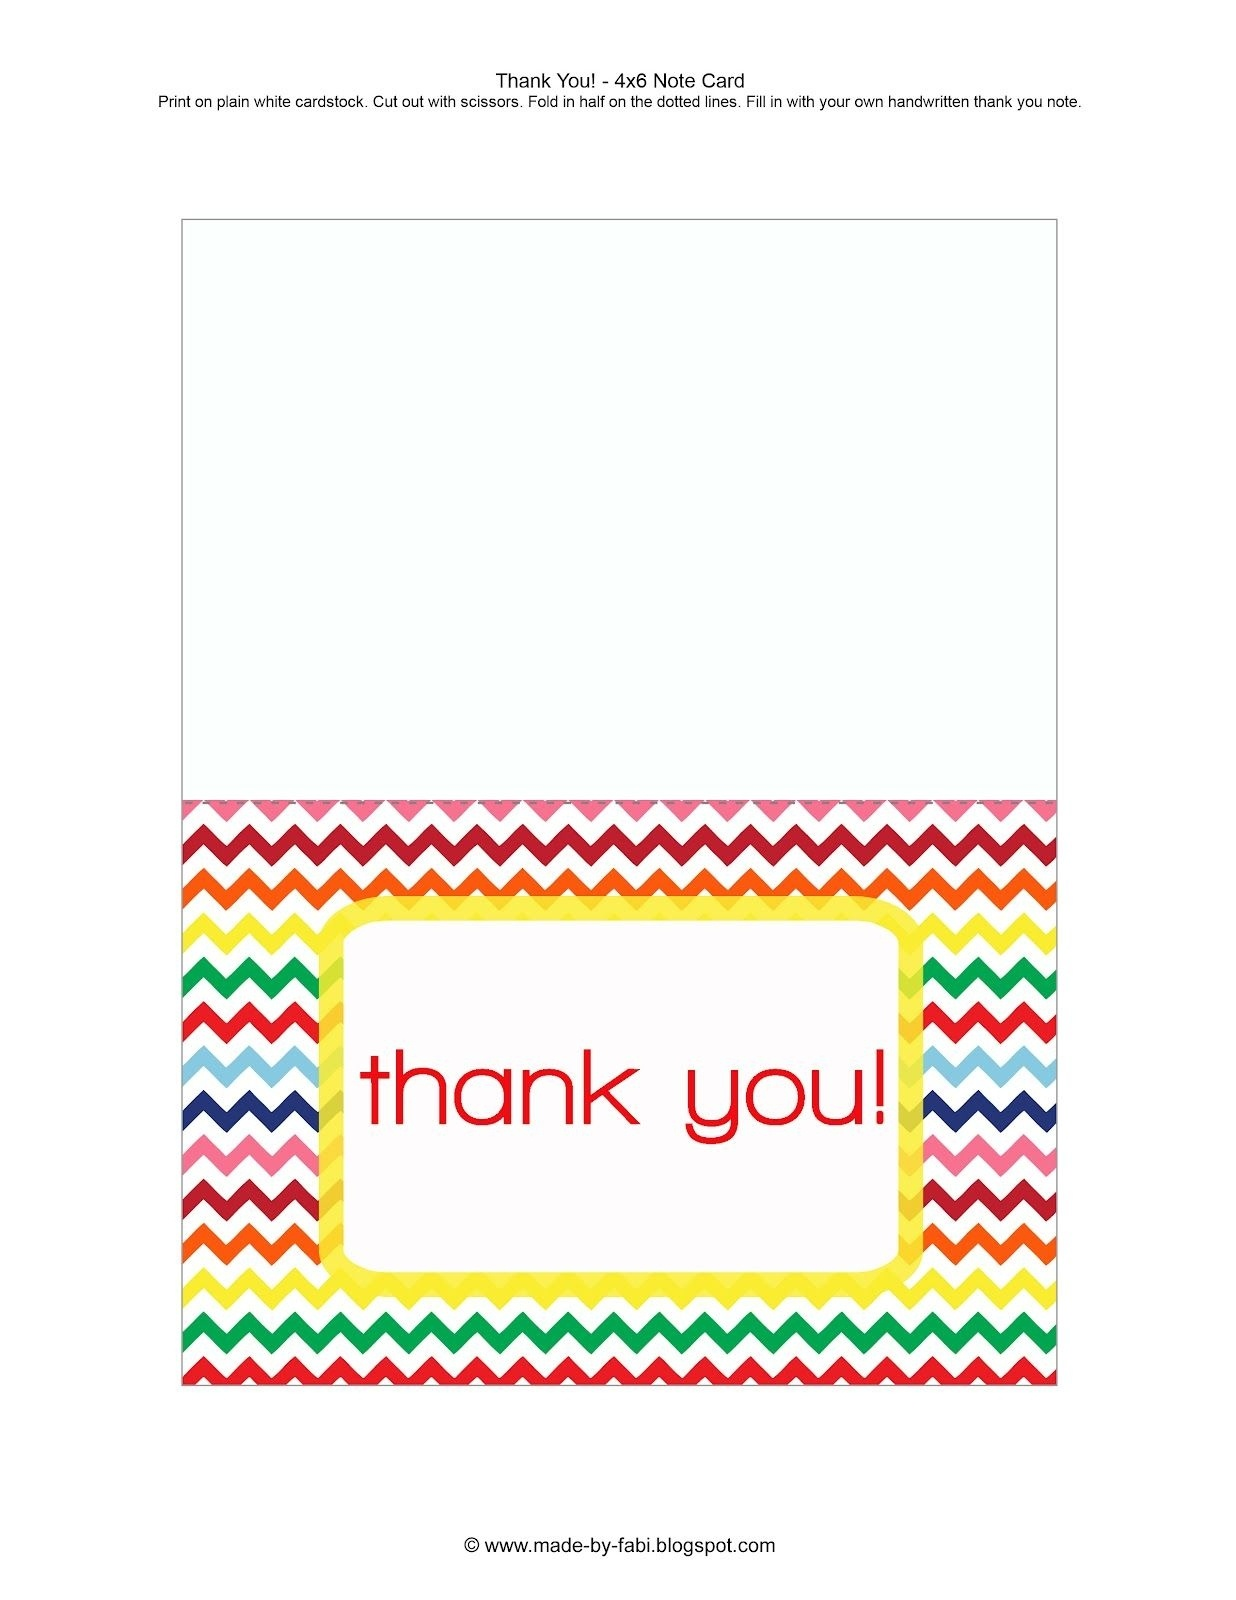 Printable Thank You Cards For Students - Printable Cards - Free Printable Thank You Cards For Teachers